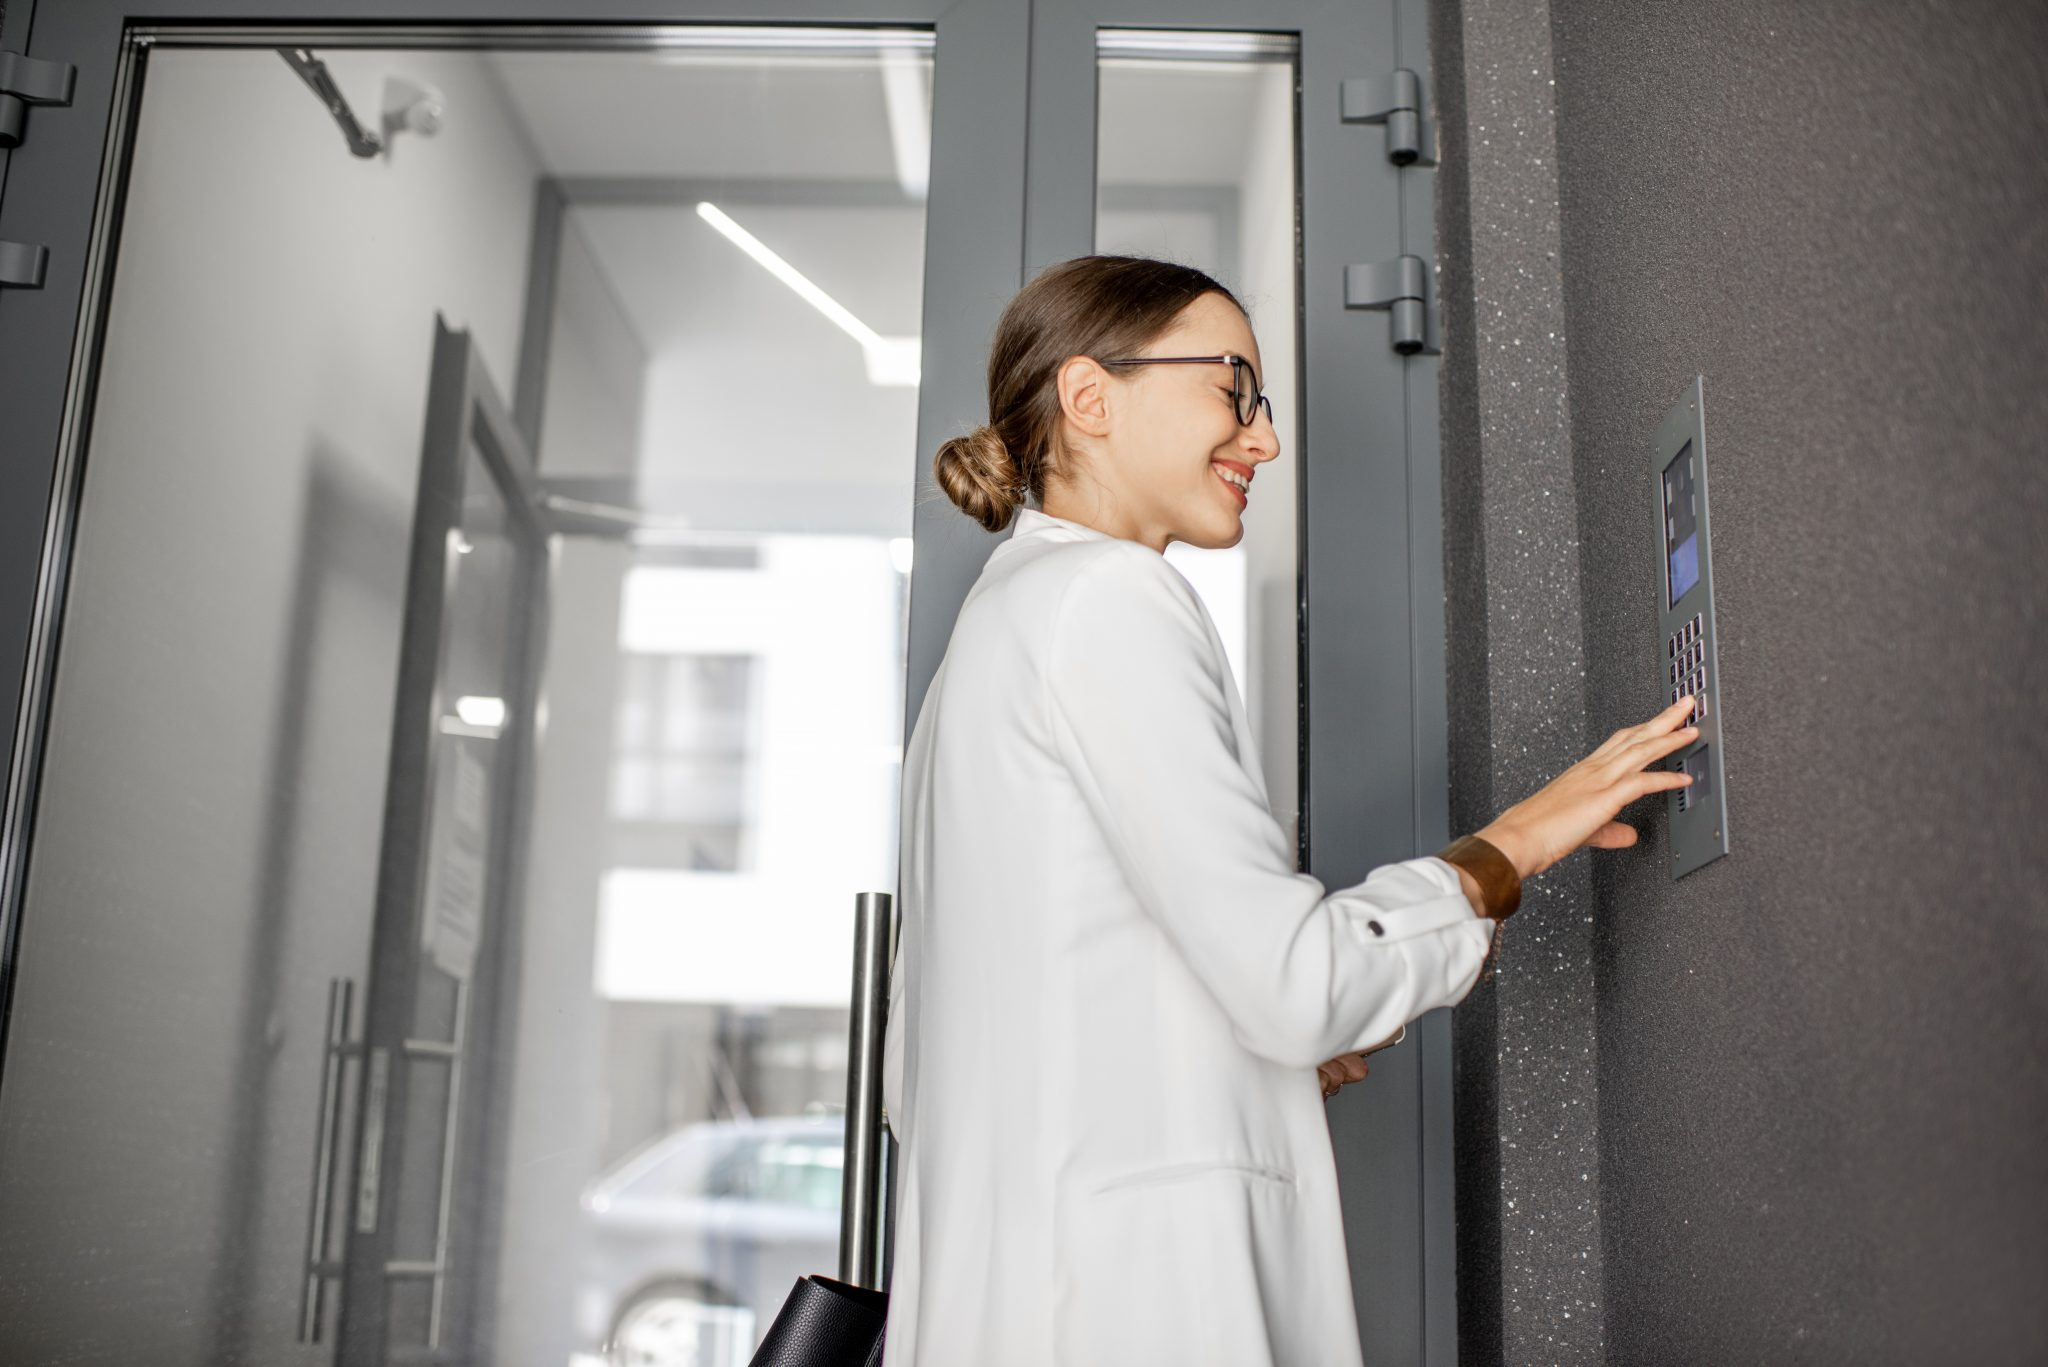 Access control for security